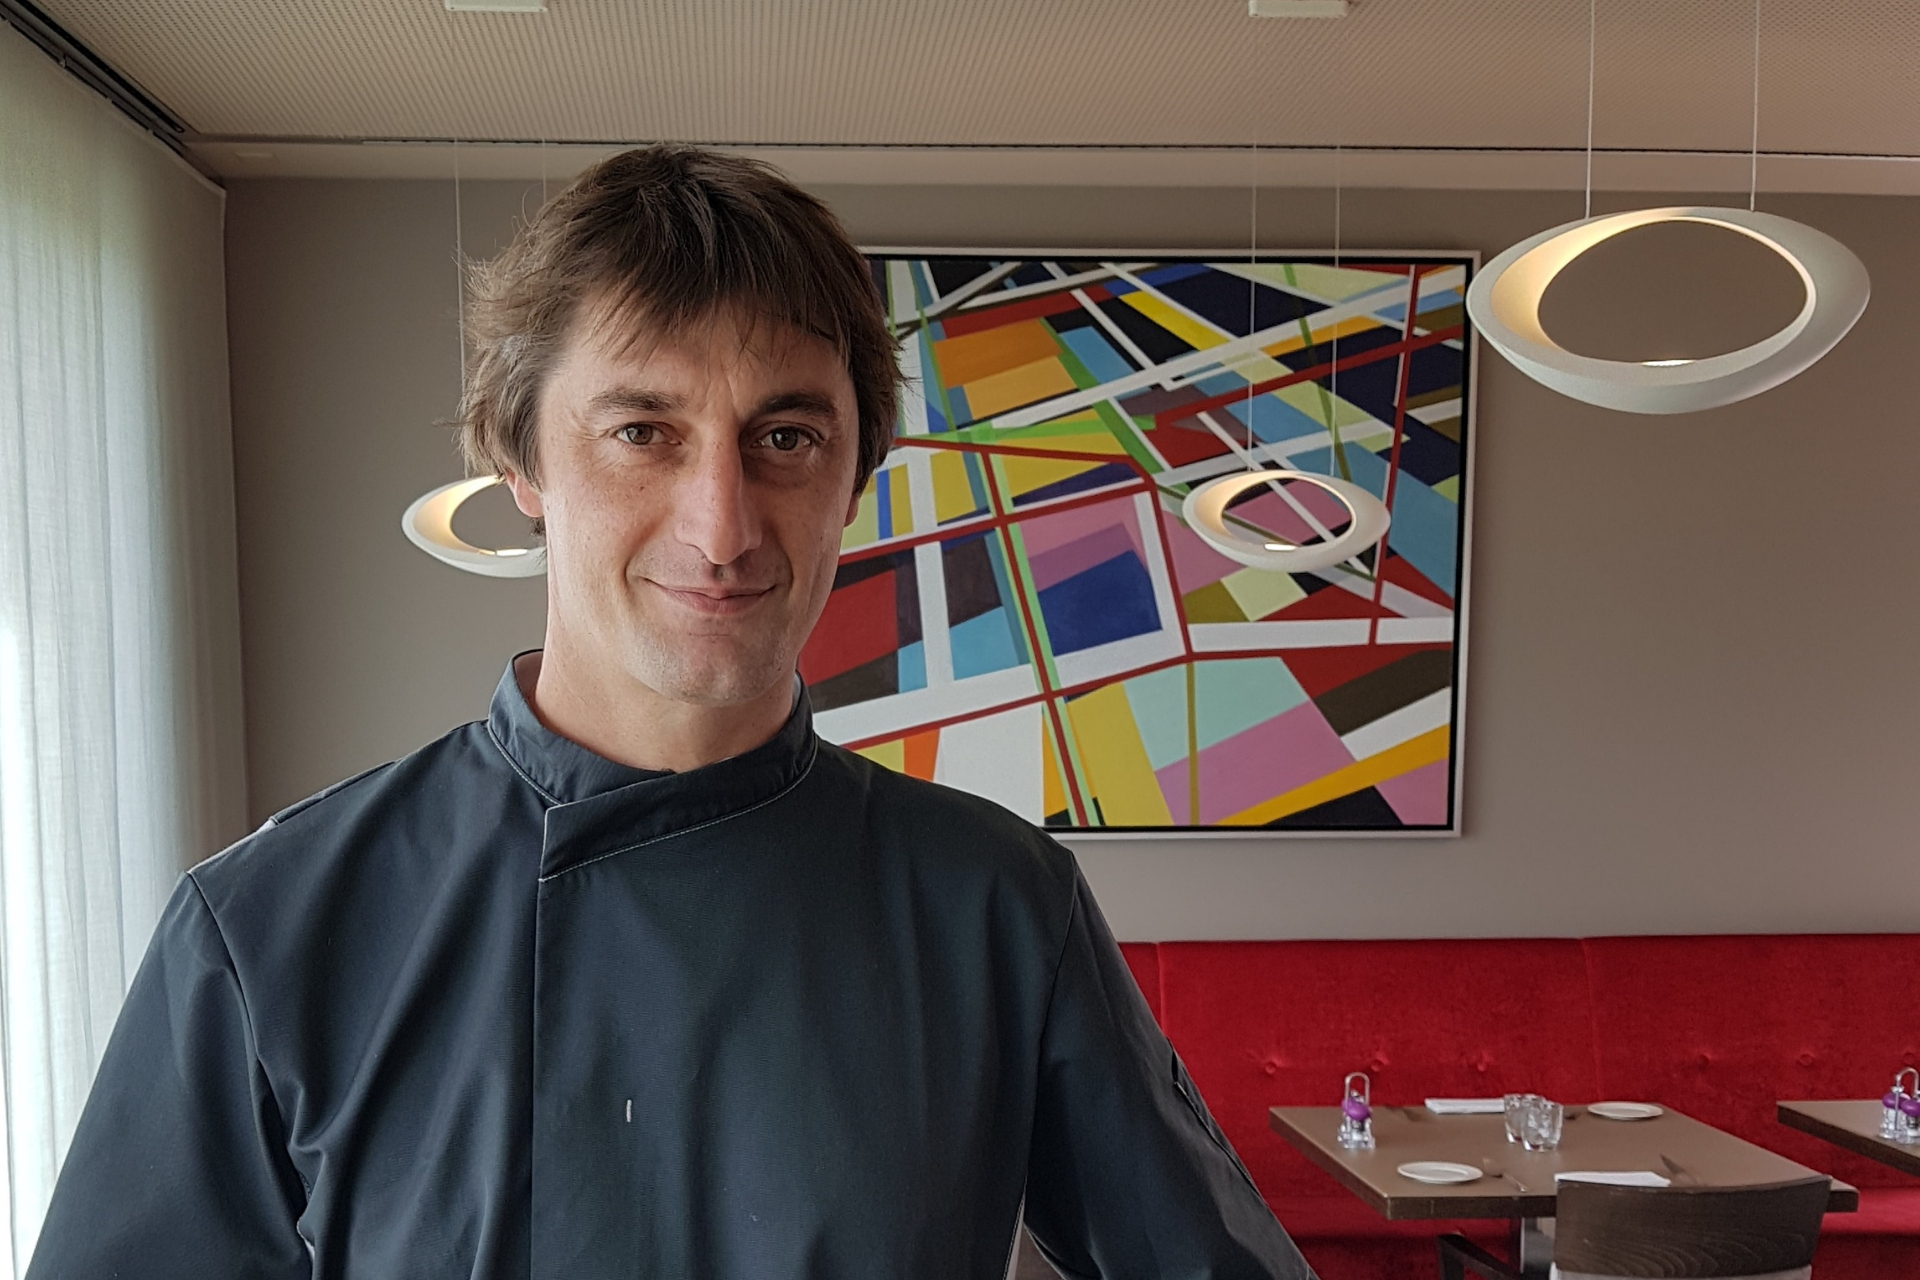 Chef Tanguy Papin Le Star*s Restaurant